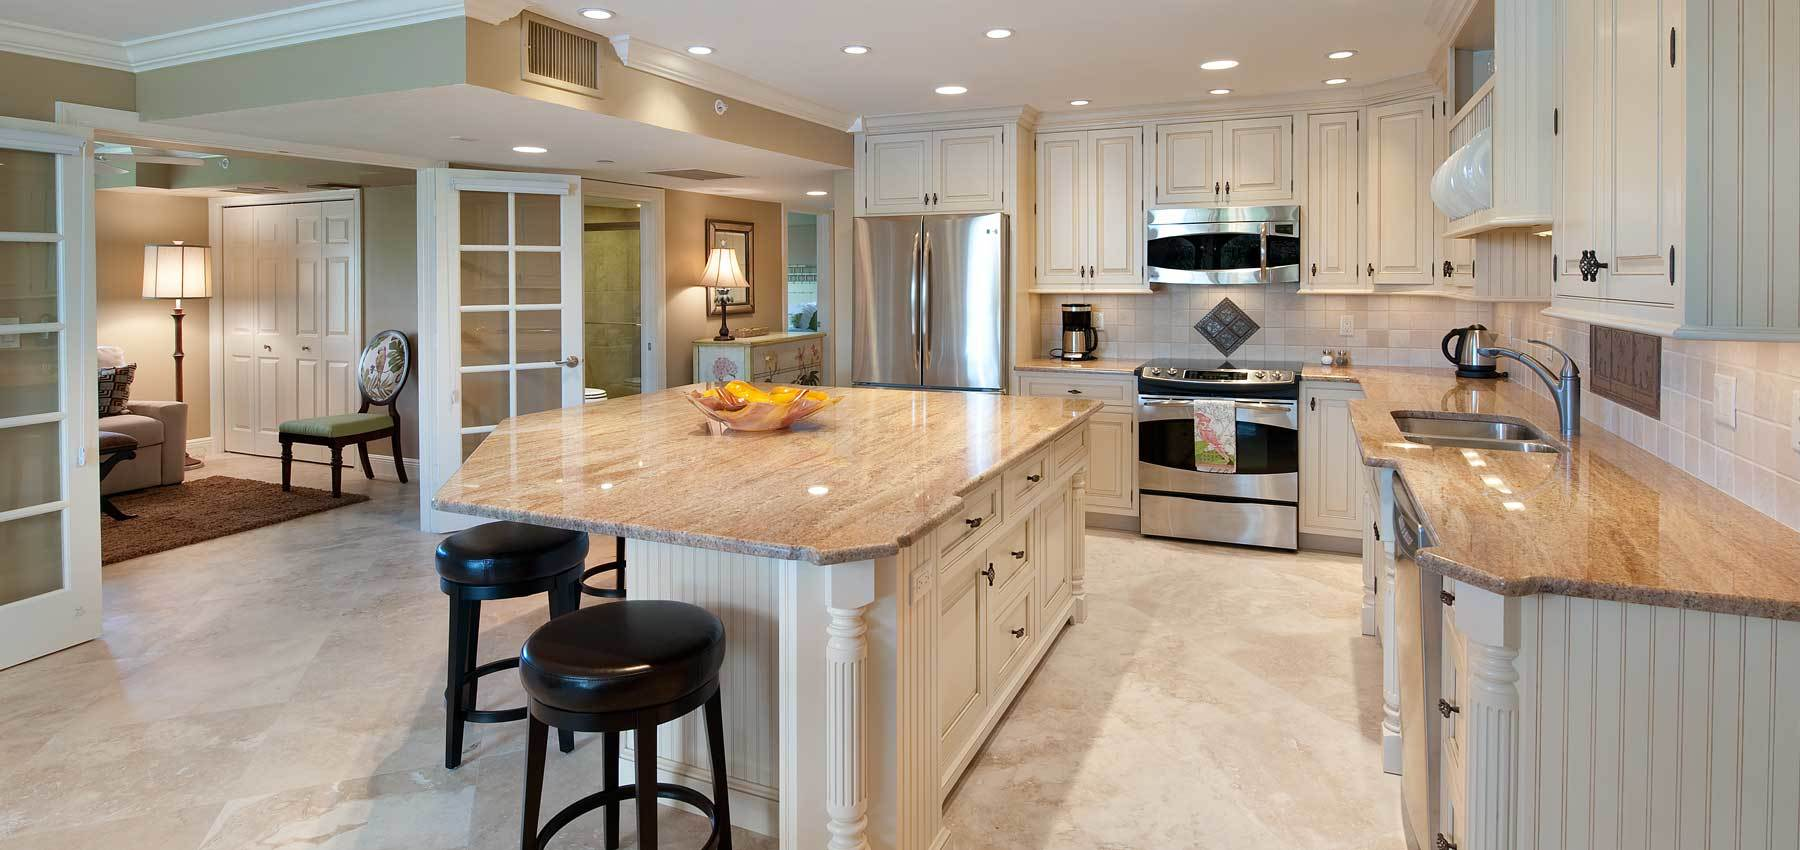 High Quality Kitchen Remodeling